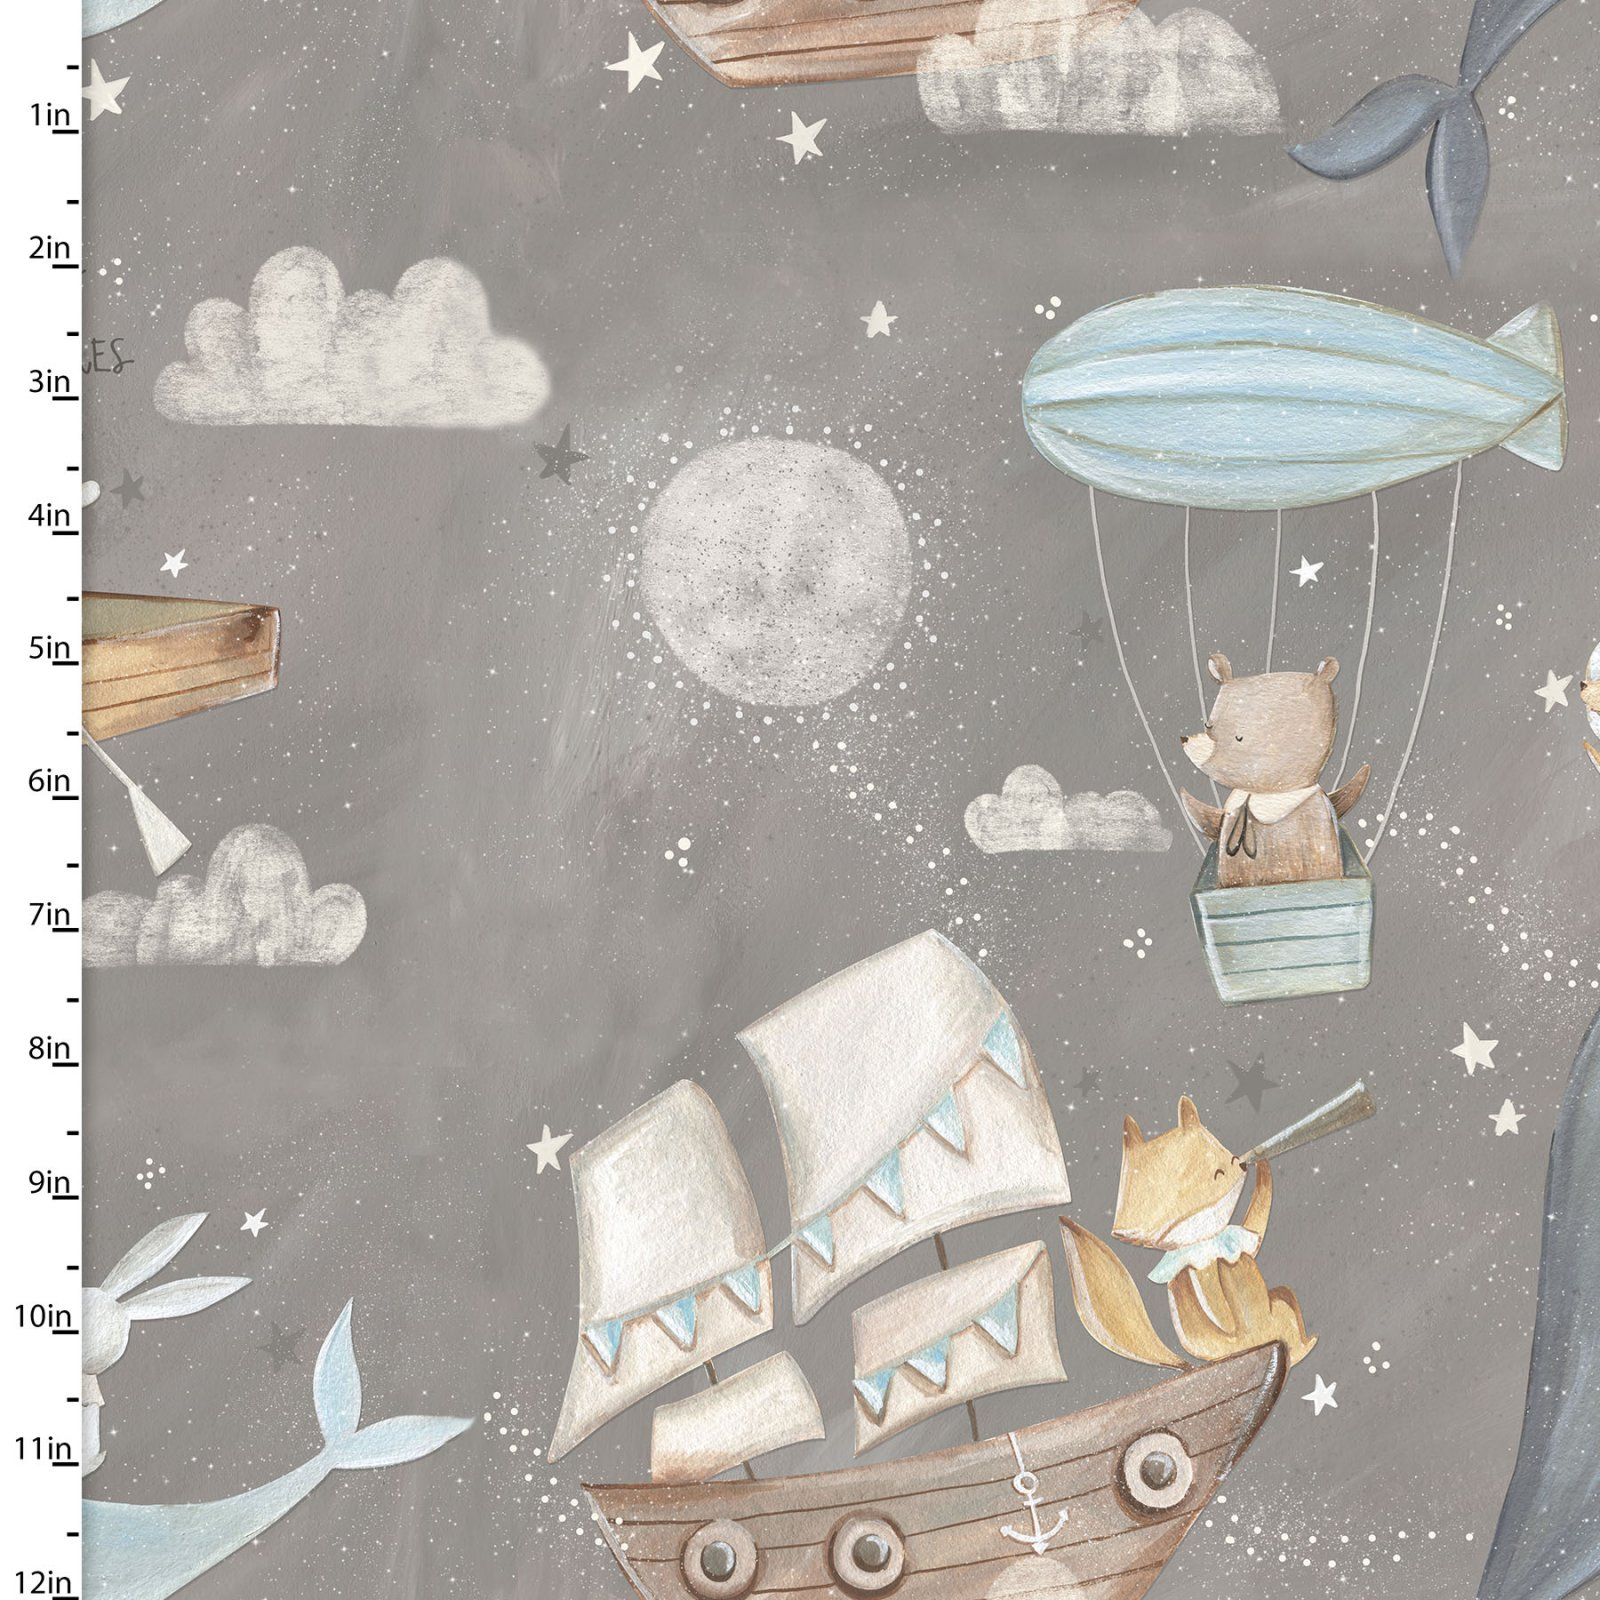 3 Wishes Fabric Adventures In The Sky by Bianca Pozzi